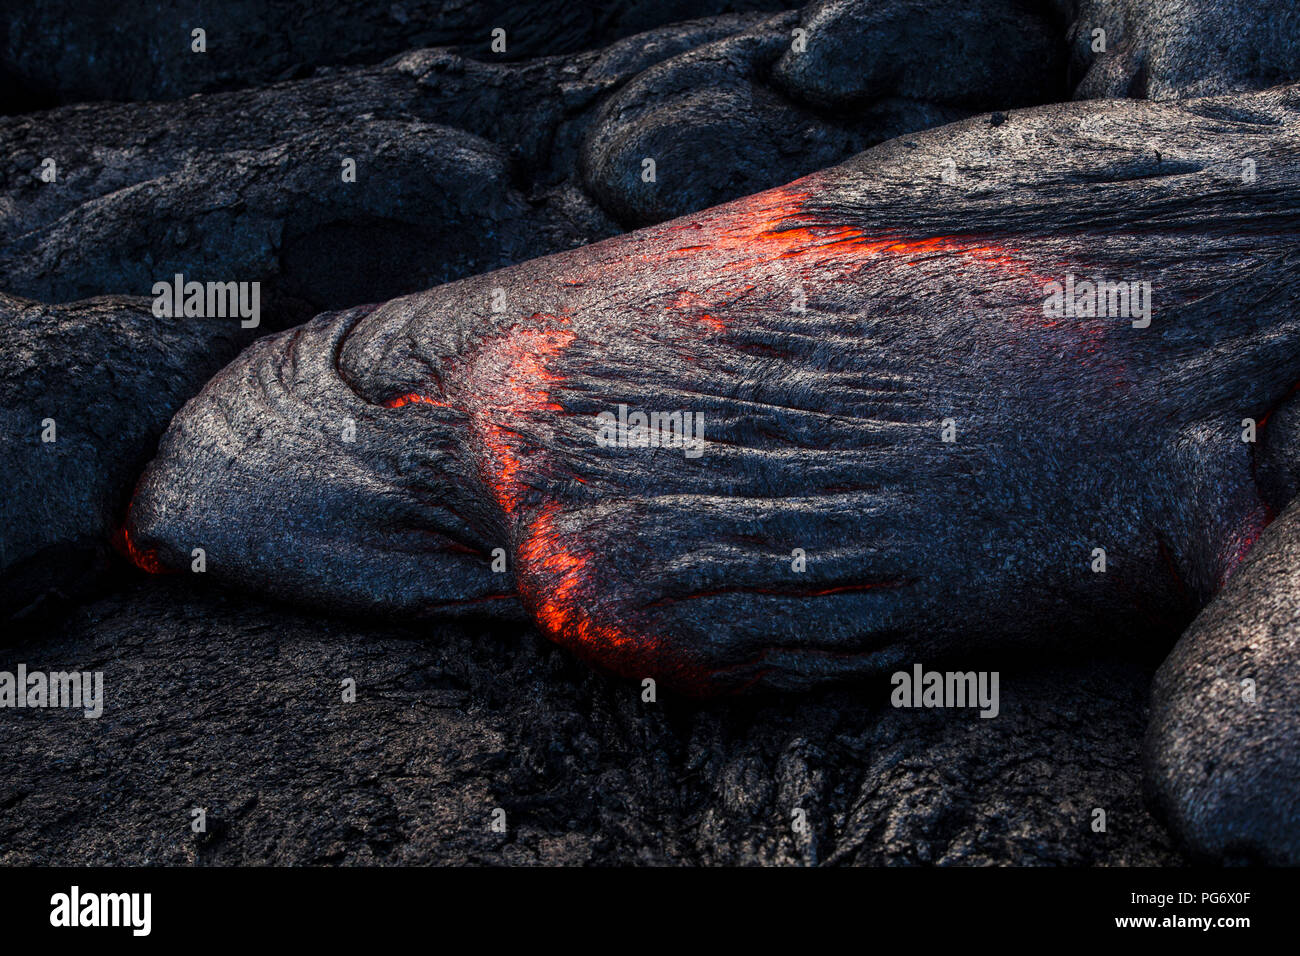 USA, Hawaii, Big Island, Volcanoes National Park, lava flowing from Pu'u O'o' volcano - Stock Image